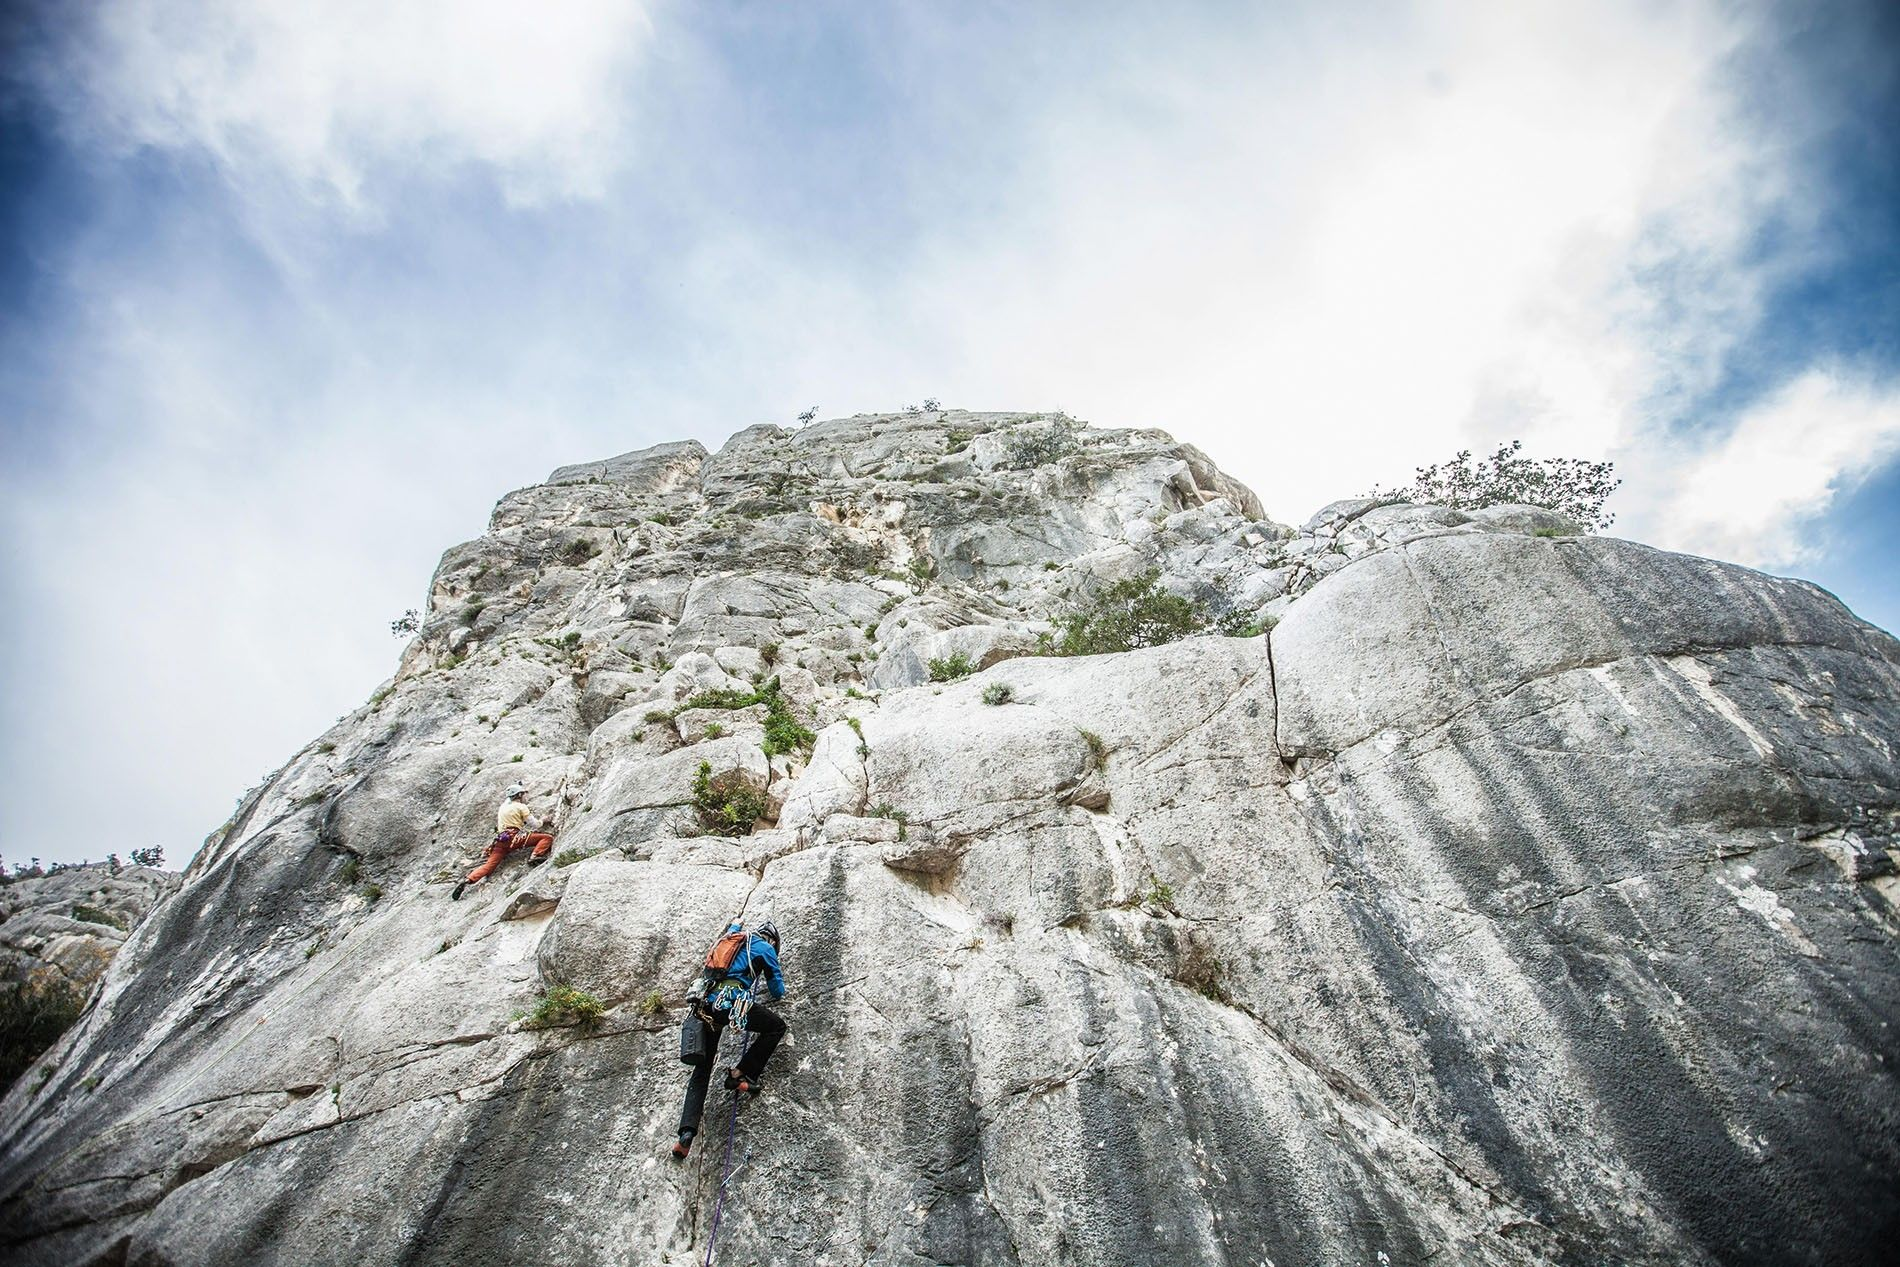 Rock climbers on the vertical cliffs at Ogliastra